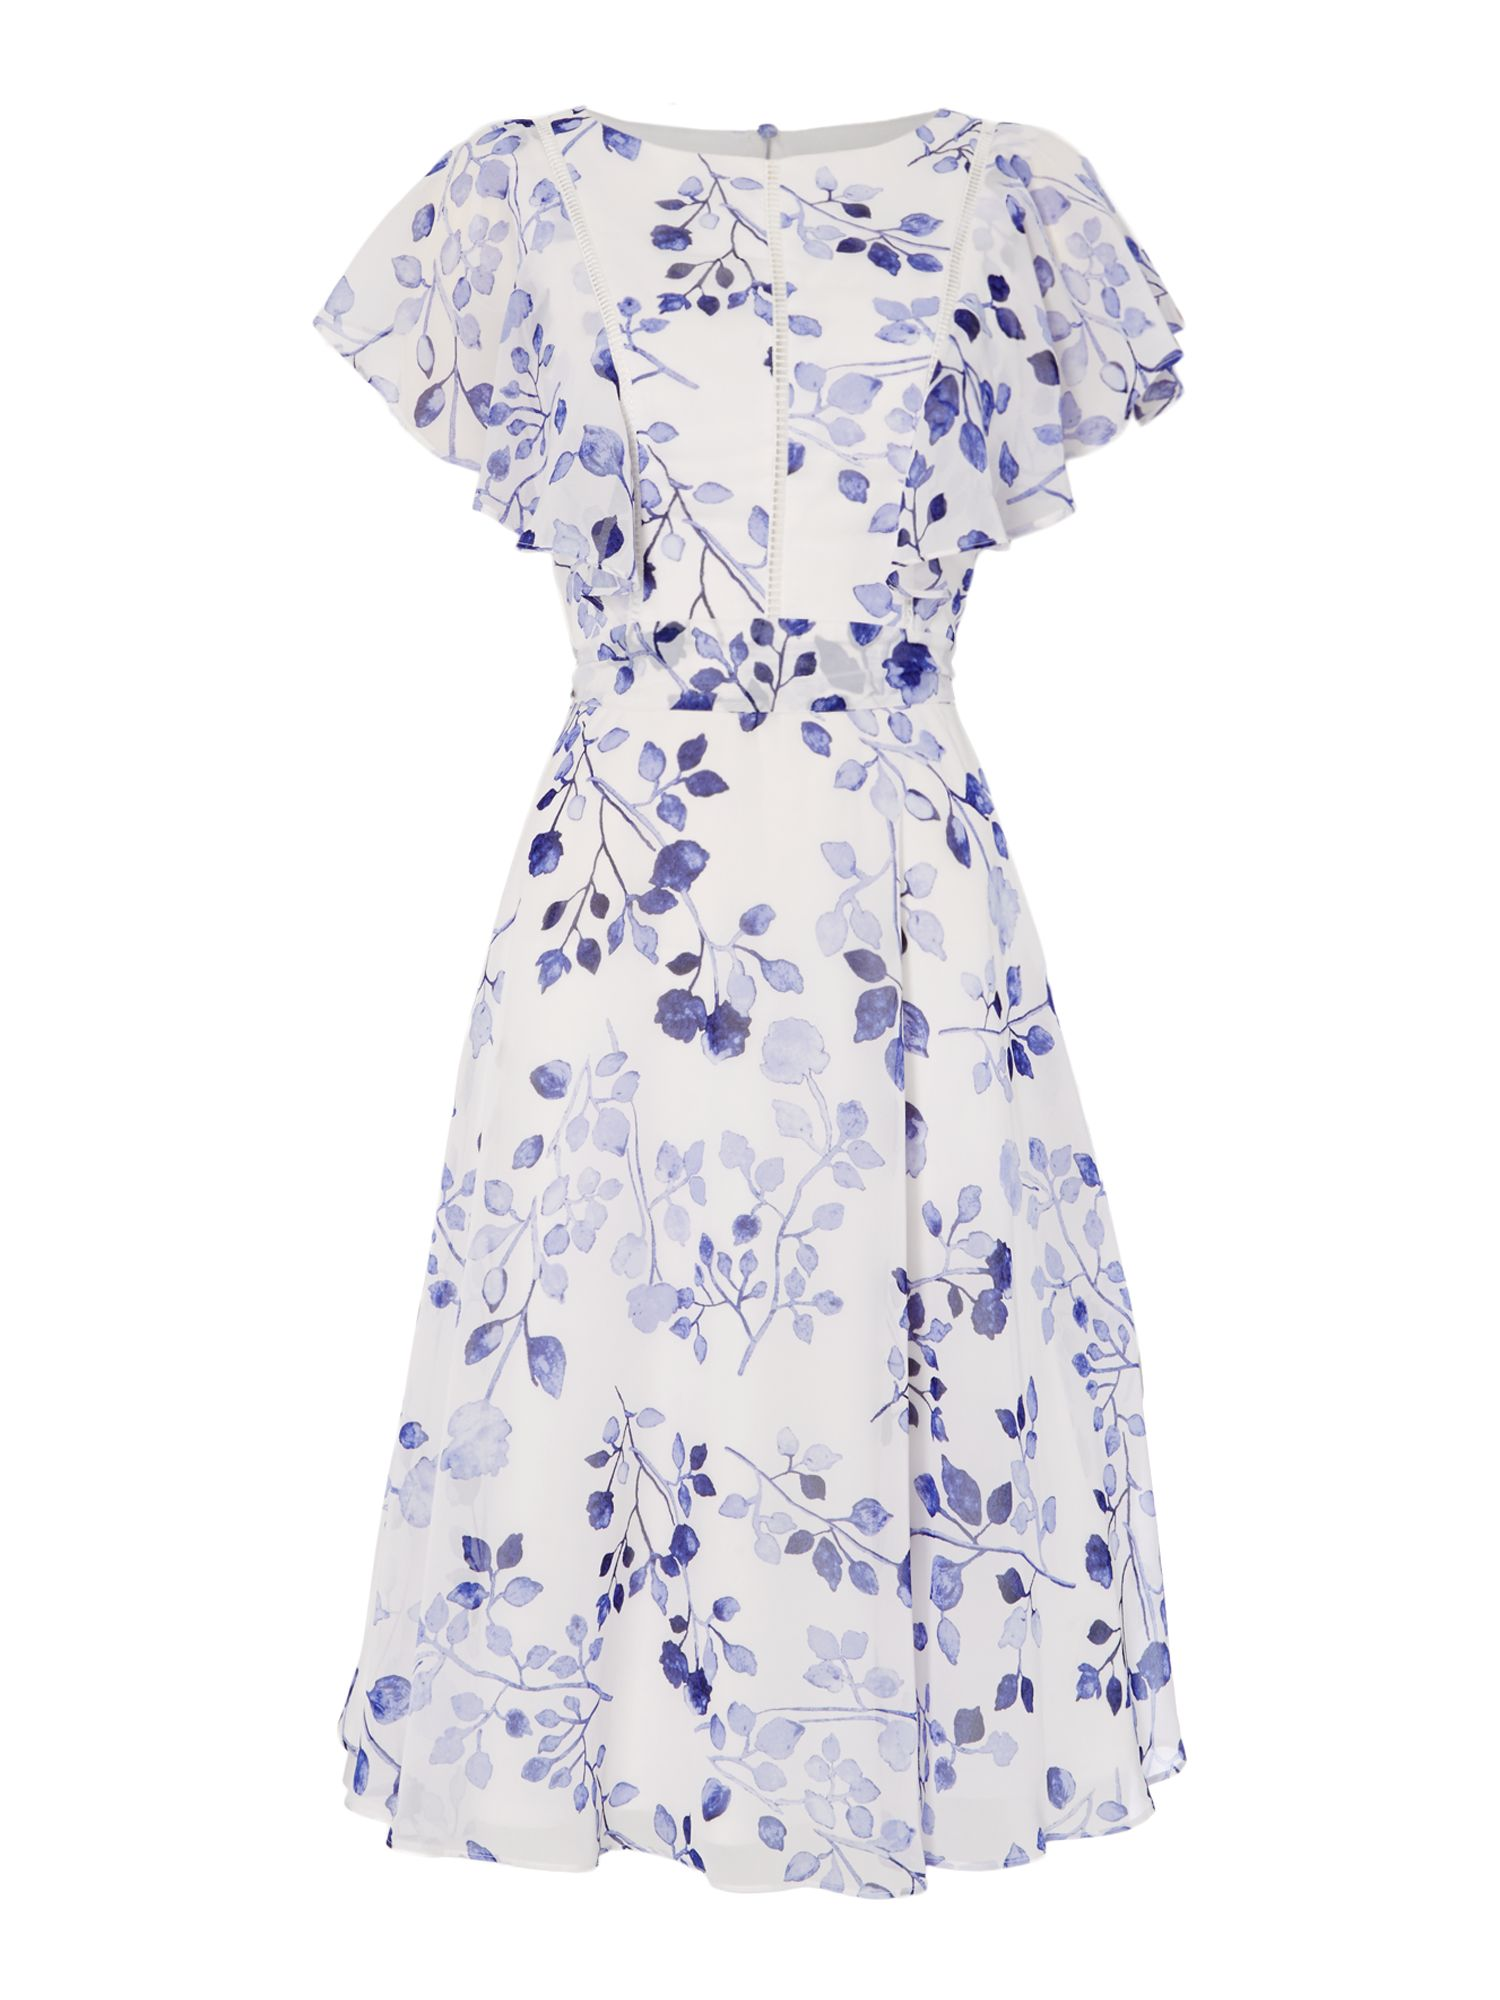 Eliza J FLORAL PRINT FILL SLEEVE DRESS, White